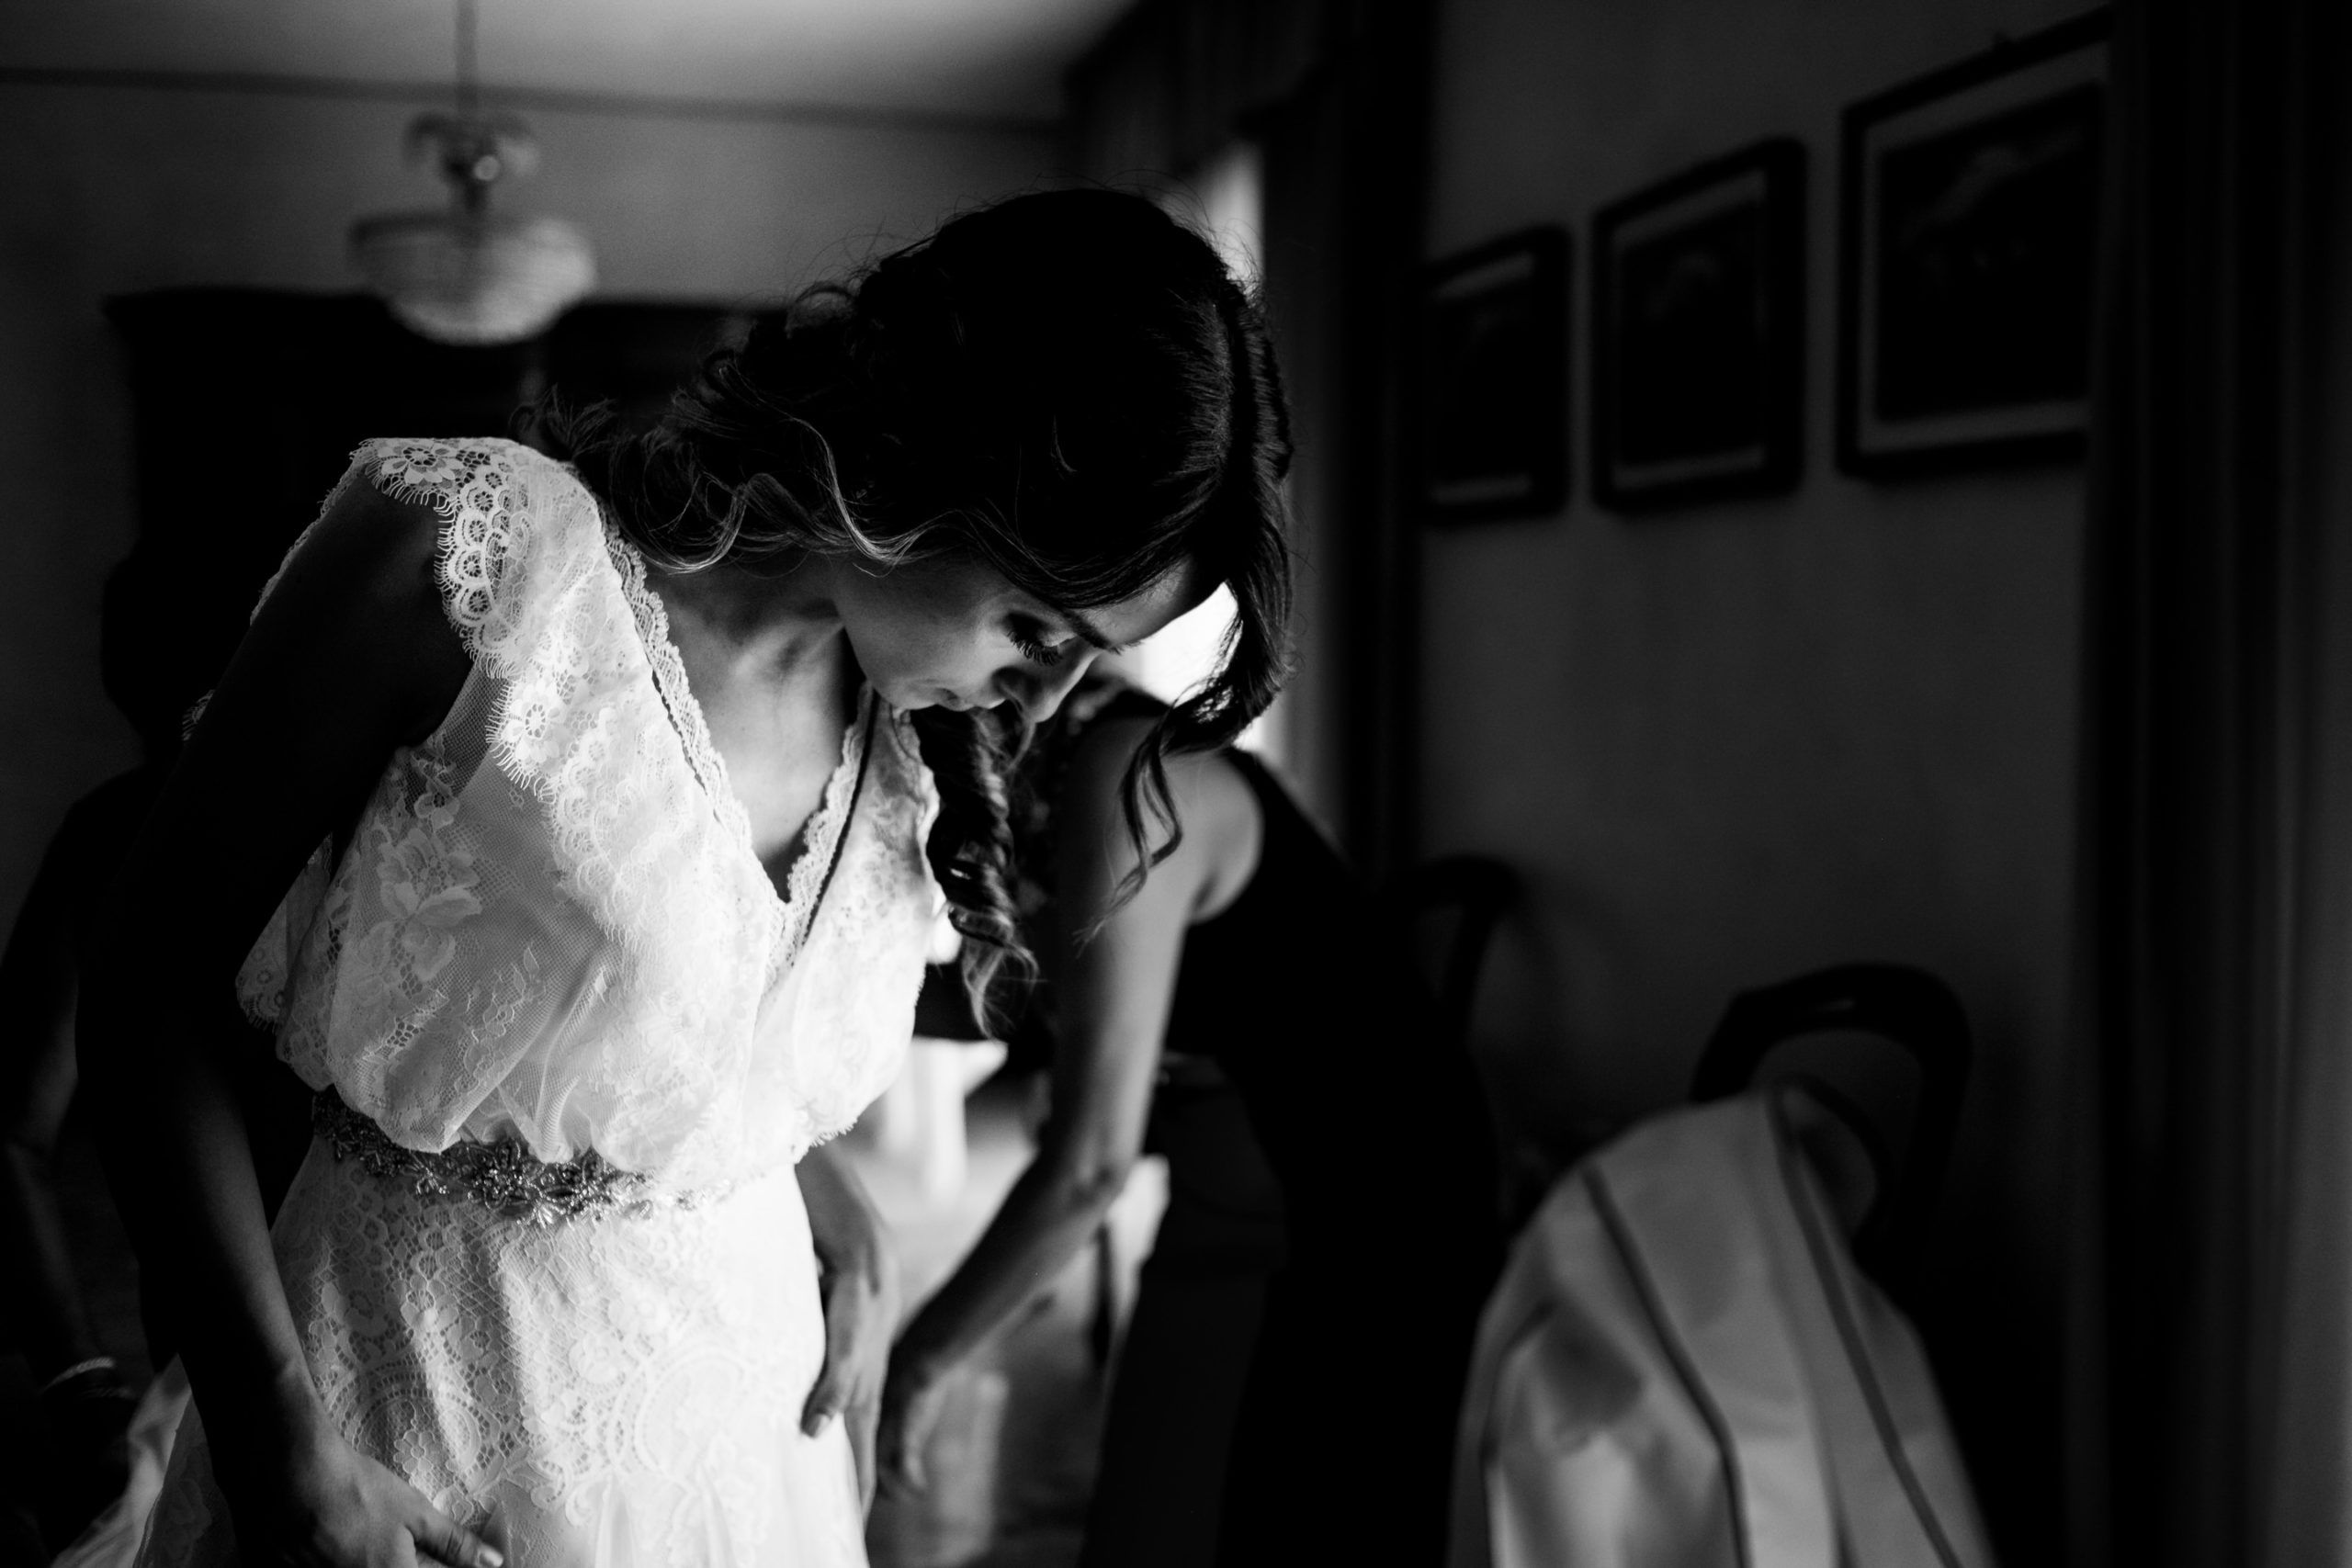 Bride Checking Wedding Dress